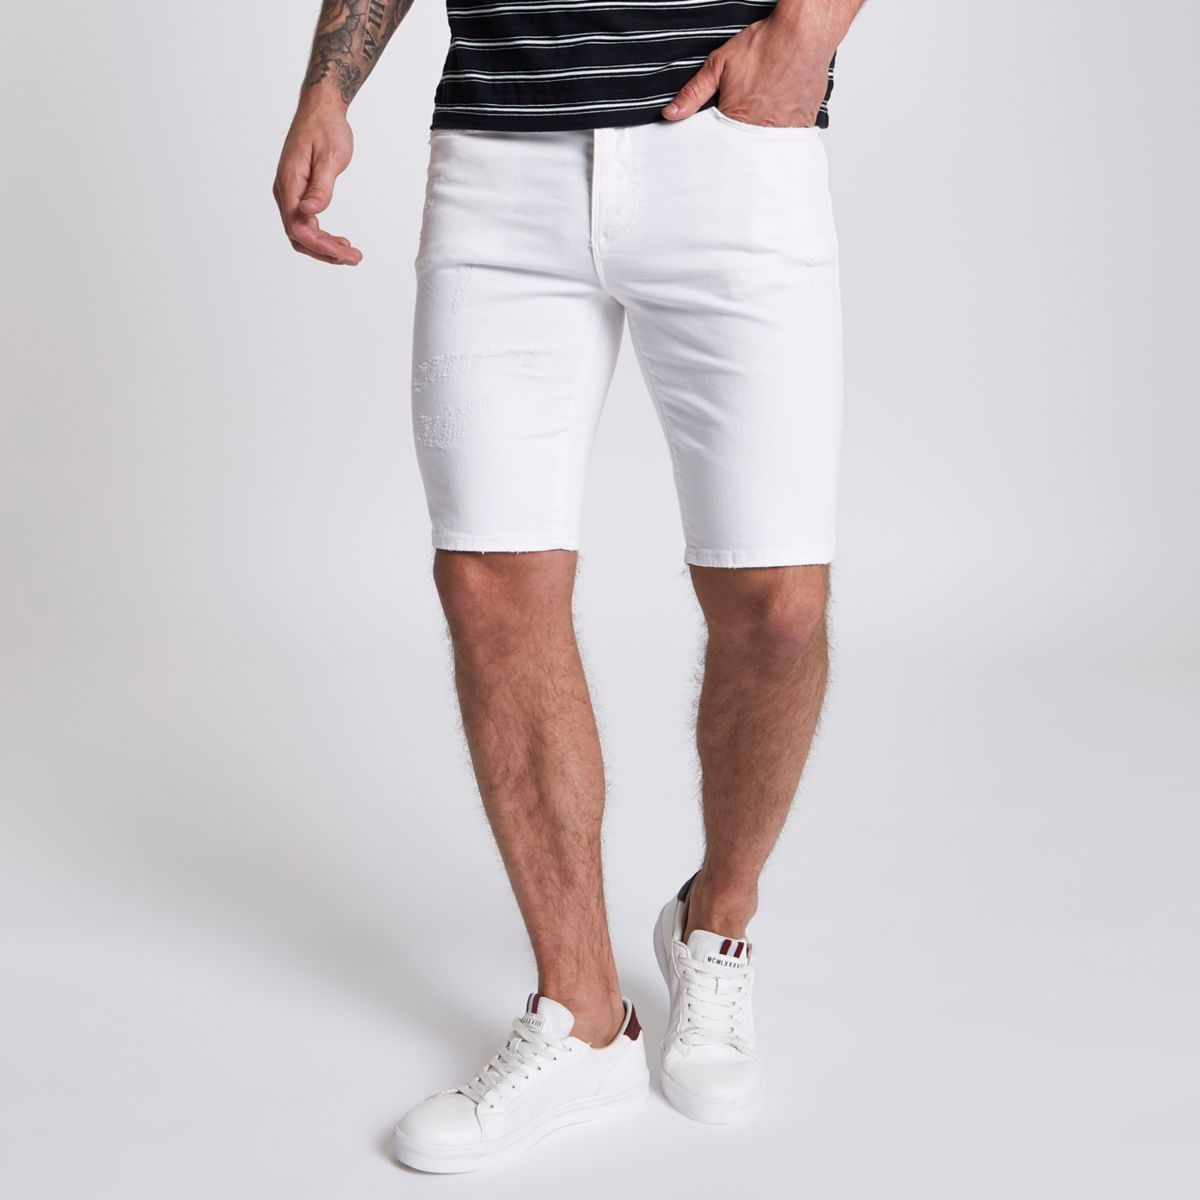 Abercrombie & Fitch Men's Shorts have a preppy, collegiate look. From rugged athletic Shorts to classic fit and shorter preppy fit Shorts.